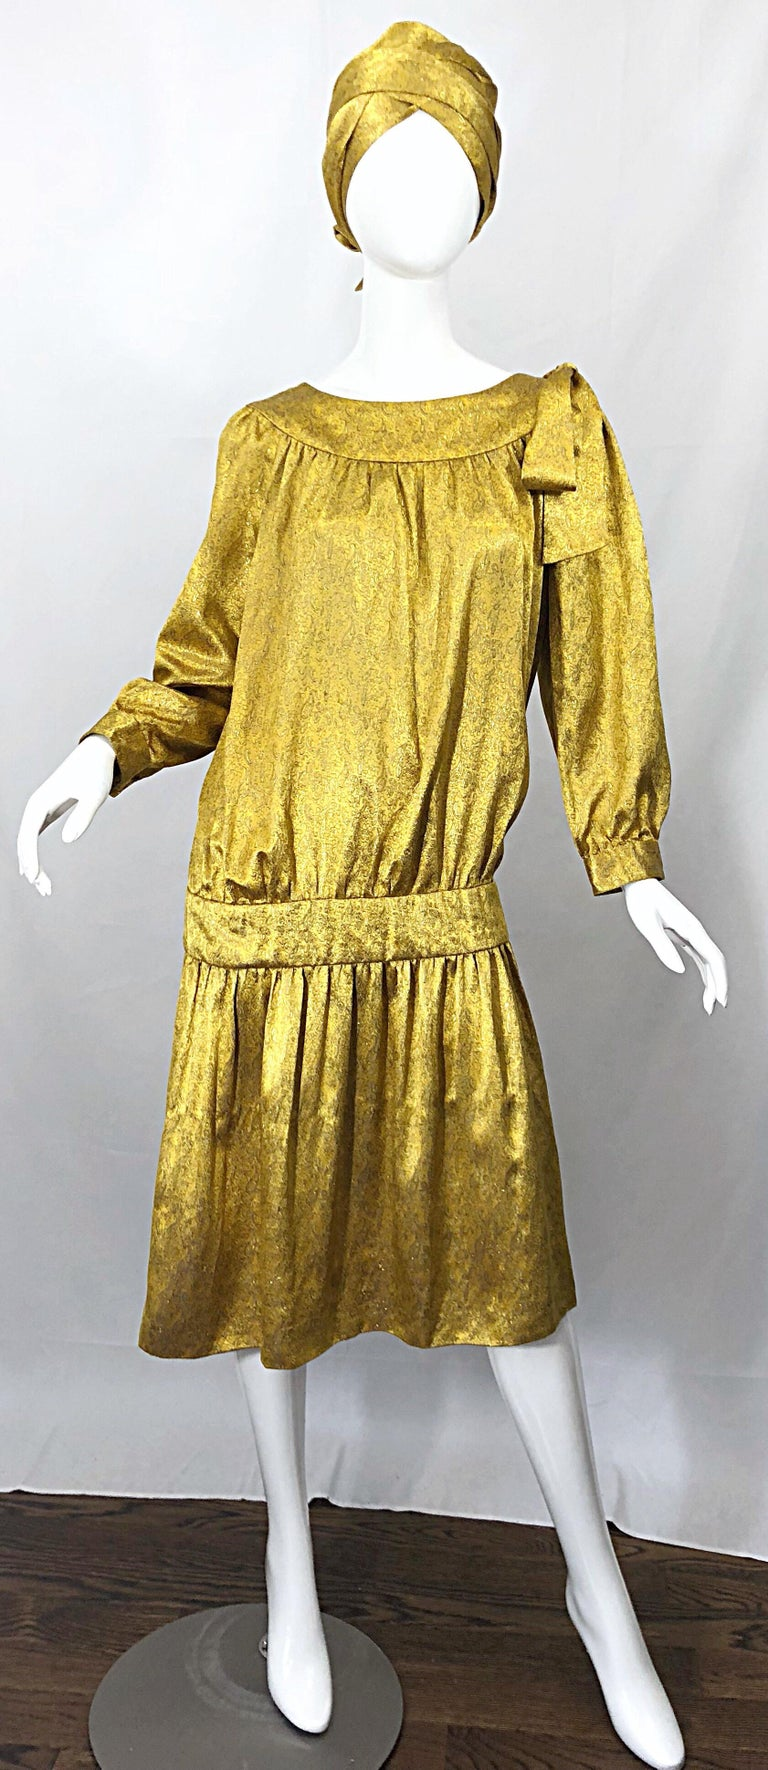 Beige Vintage Brioni Yellow + Gold Silk 1920s Style Drop Waist Dress + Turban Sash For Sale